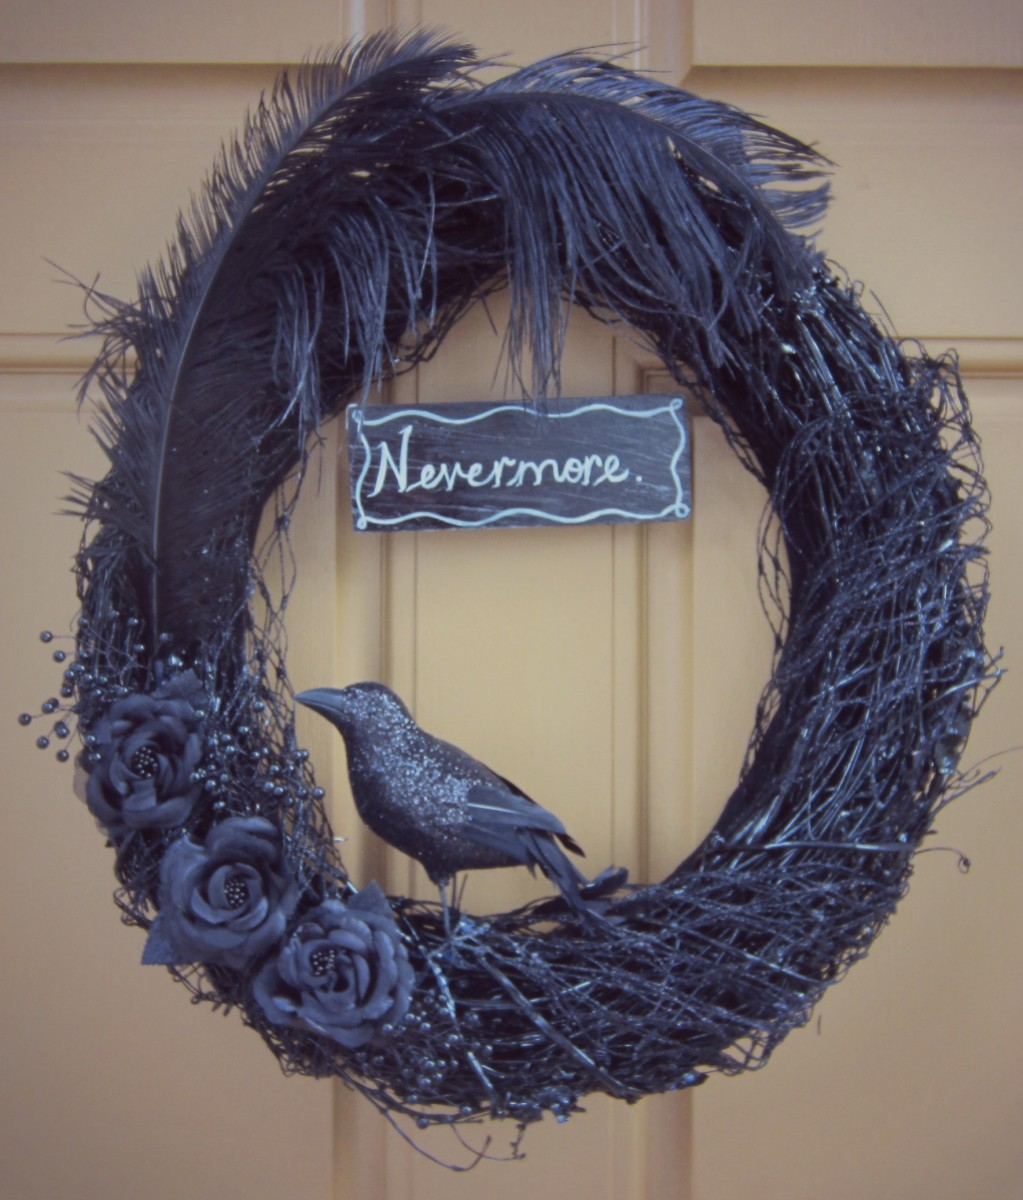 The Raven finished wreath